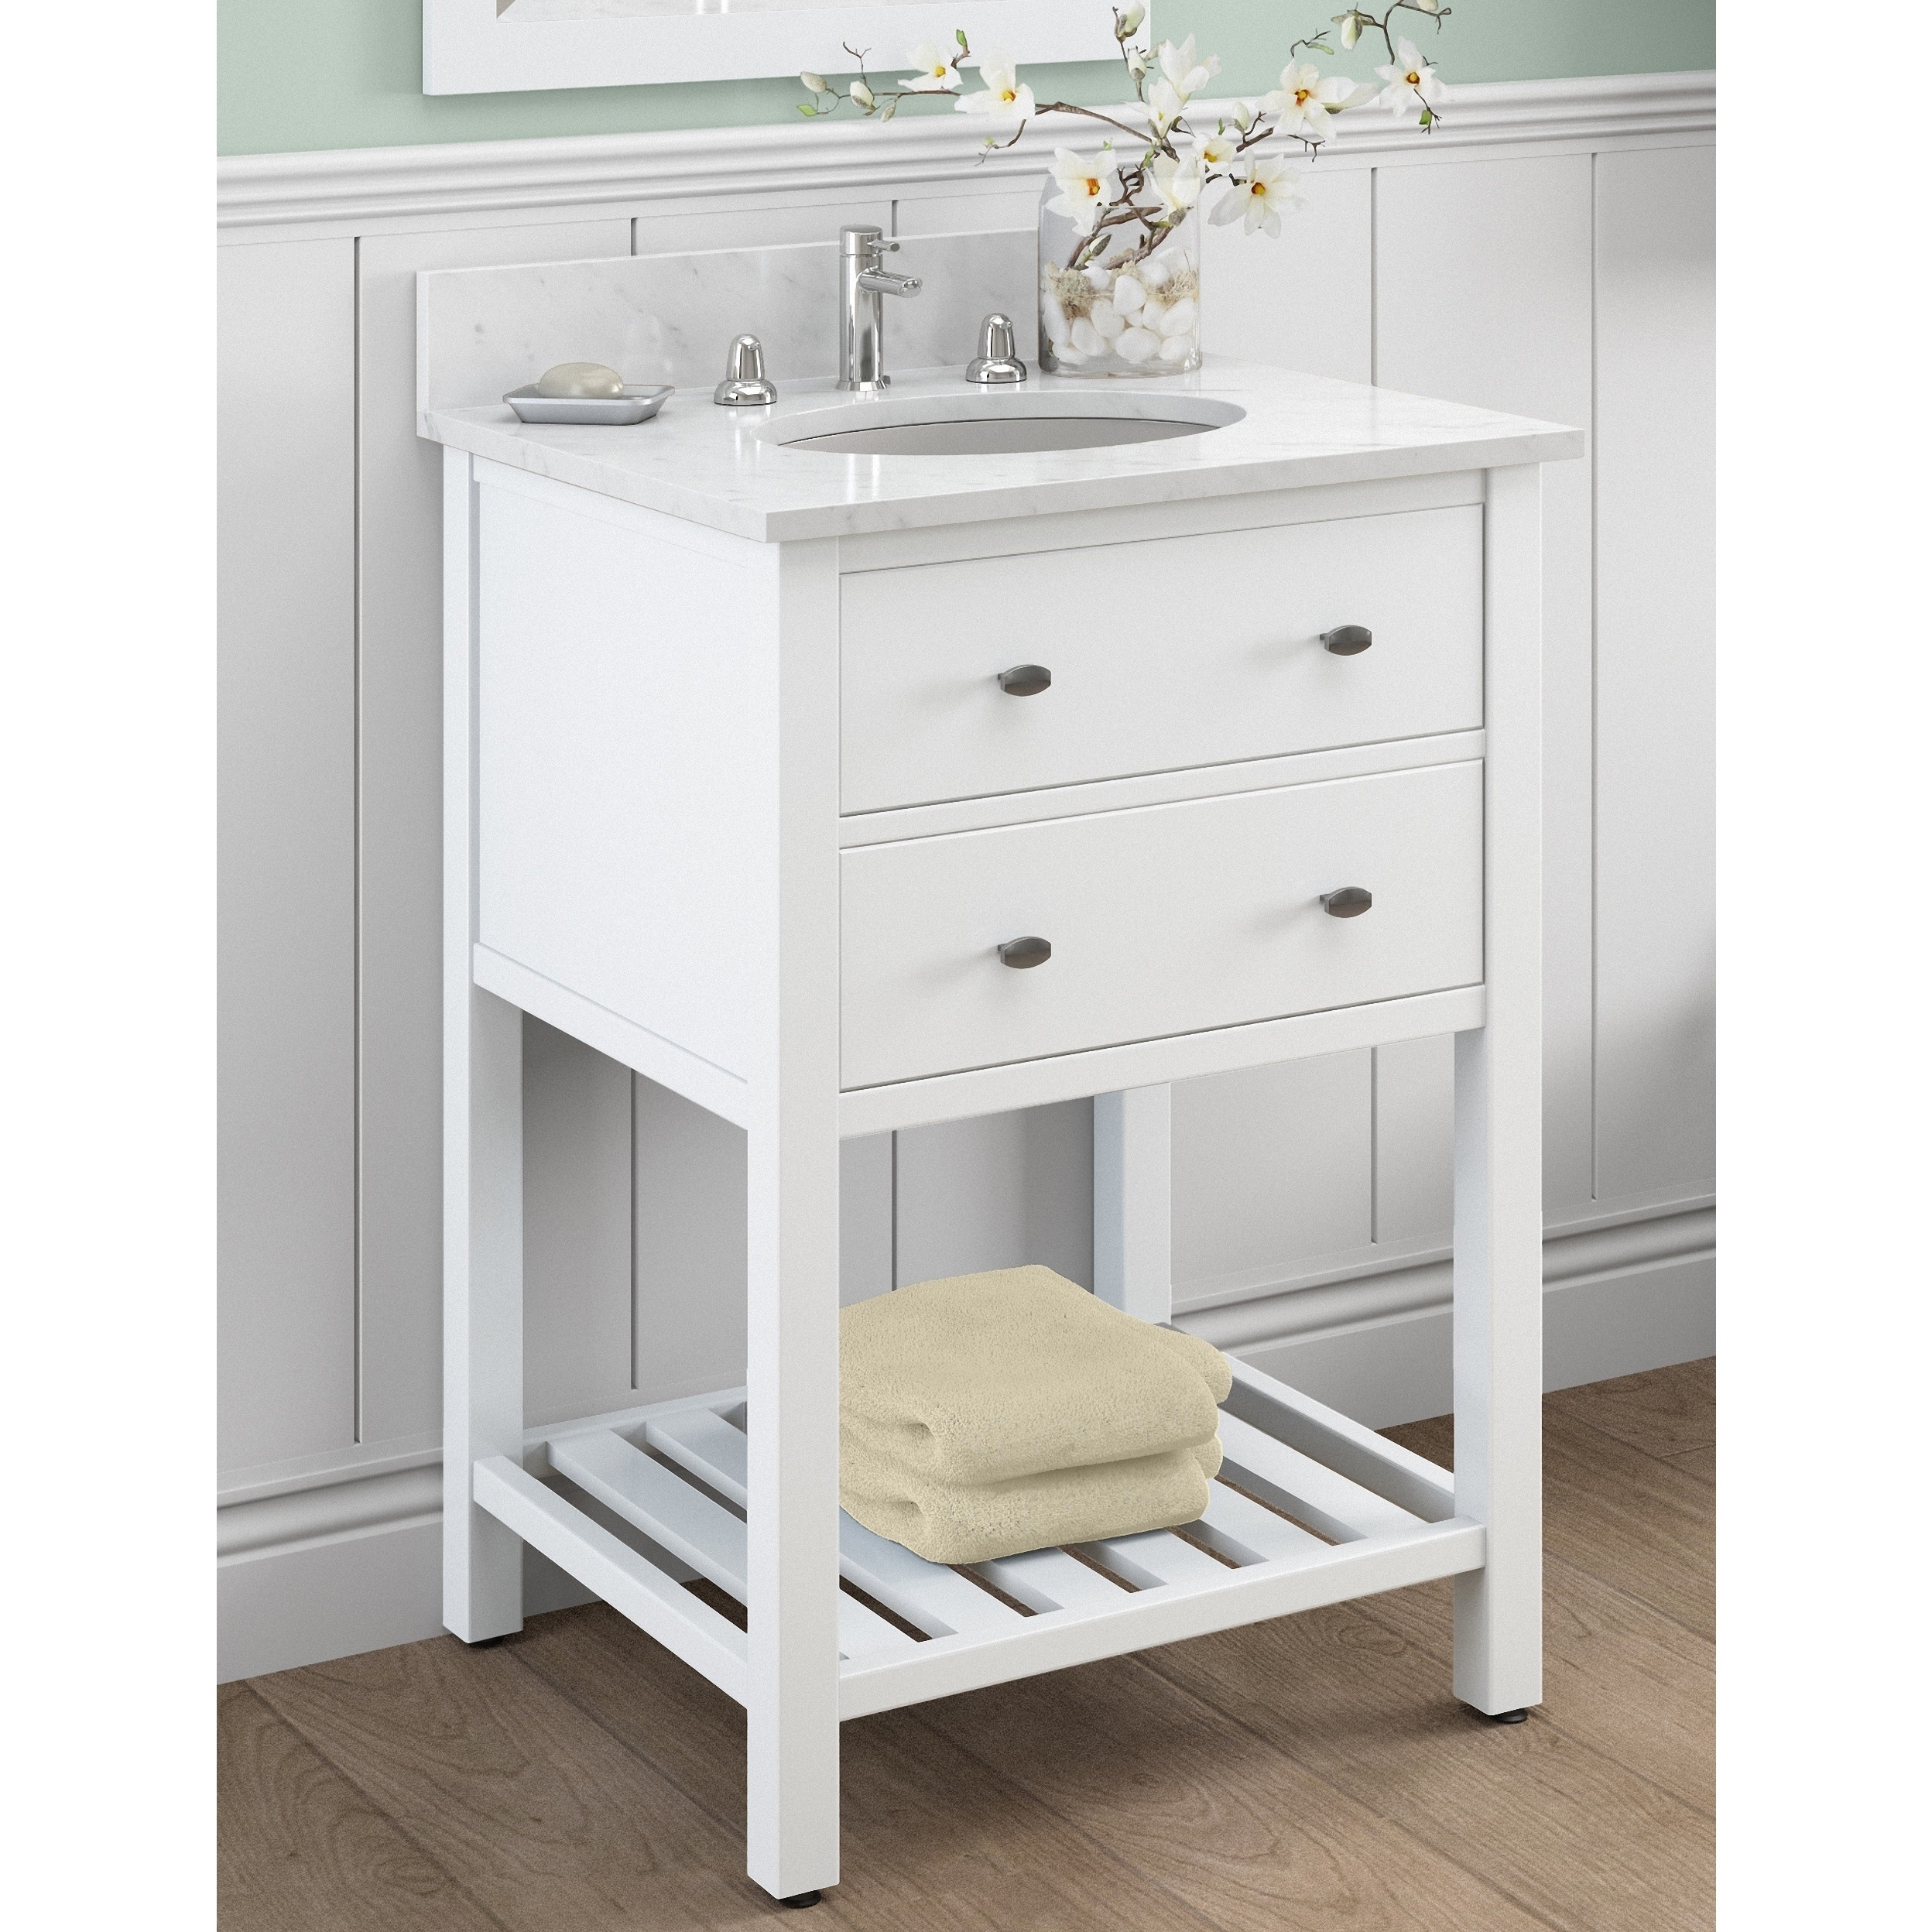 24 Inch Bathroom Vanity Without Sink Home Design